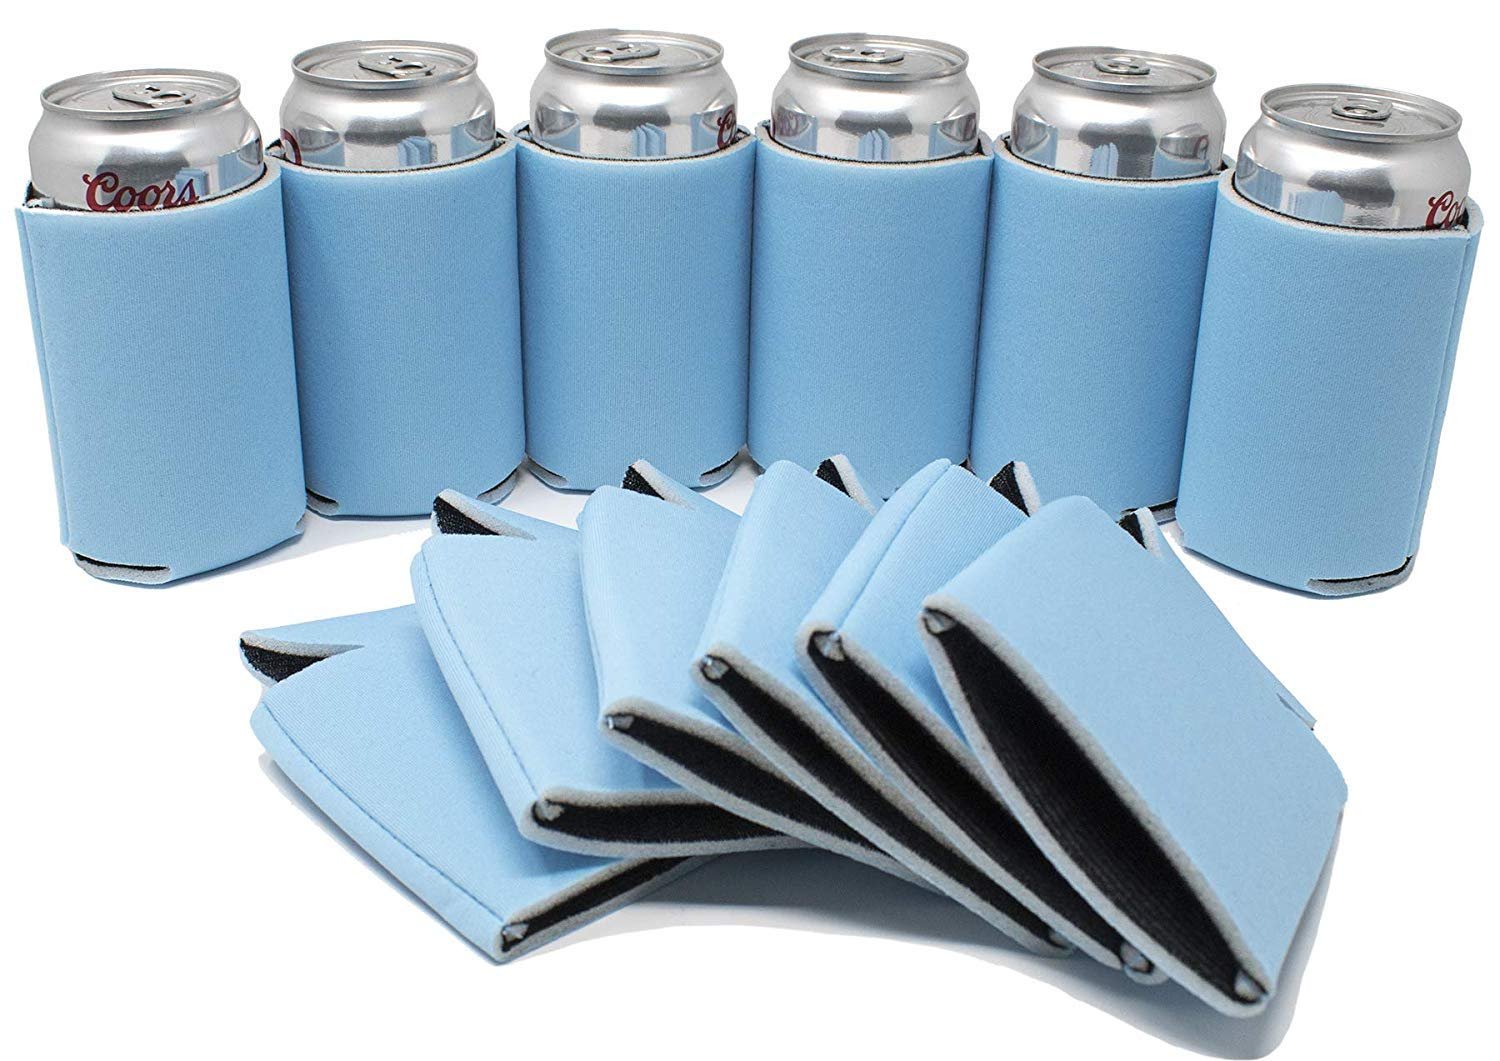 TahoeBay 25 Blank Beer Can Coolers, Plain Bulk Collapsible Soda Cover Coolies, DIY Personalized Sublimation Sleeves for Weddings, Bachelorette Parties, Funny HTV Party Favors (Placid Blue, 25)